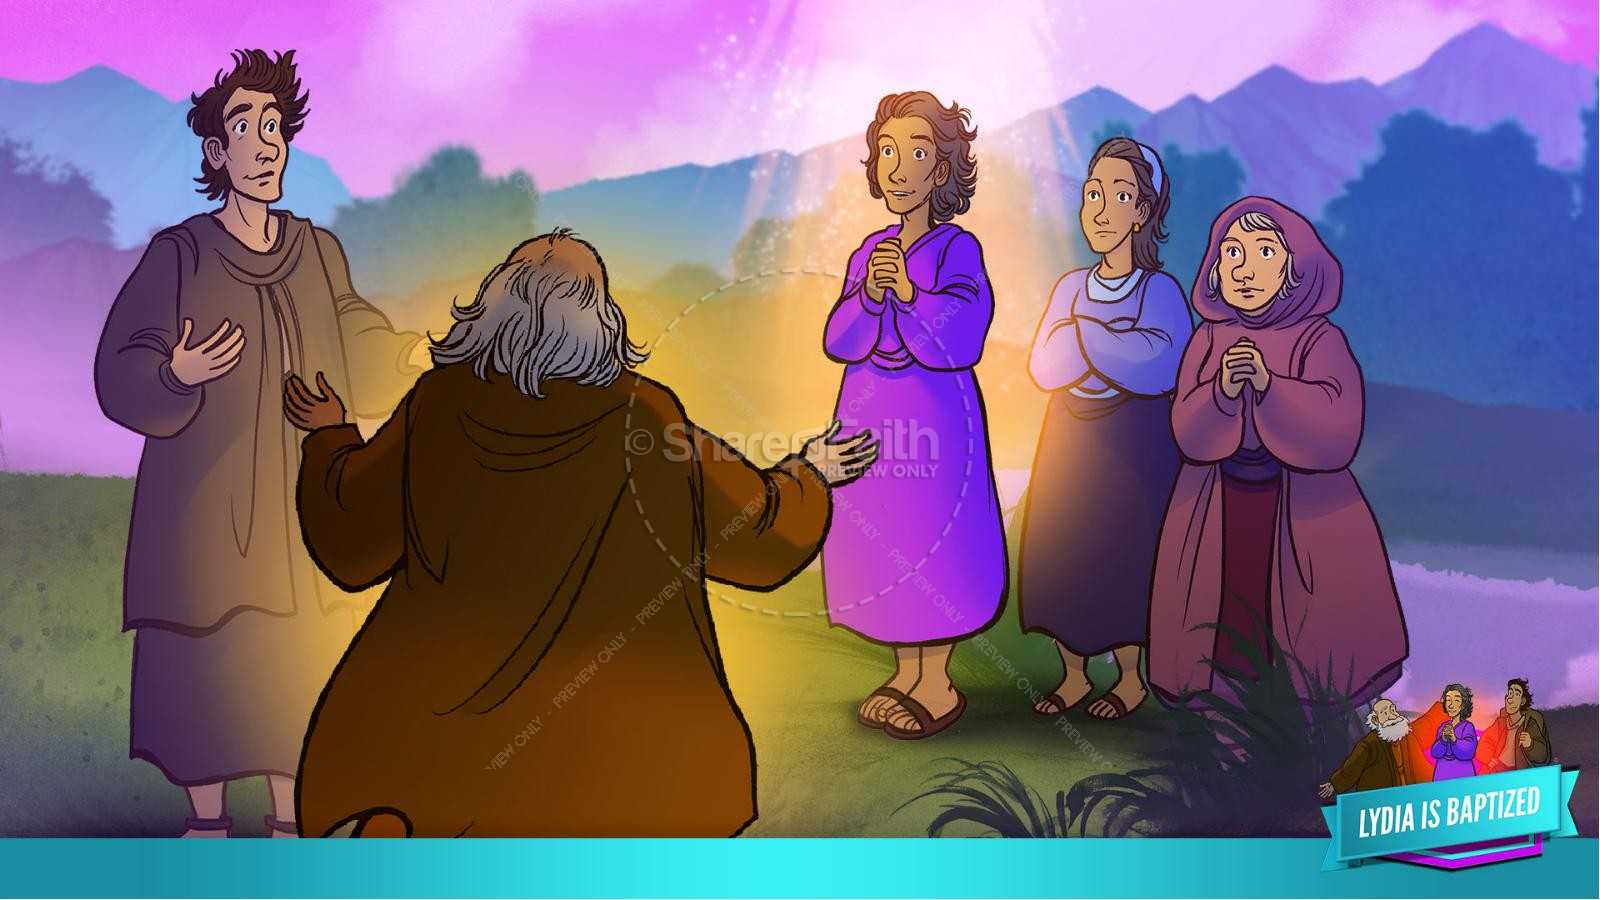 Acts 16 Lydia is Baptized Kids Bible Story | slide 30